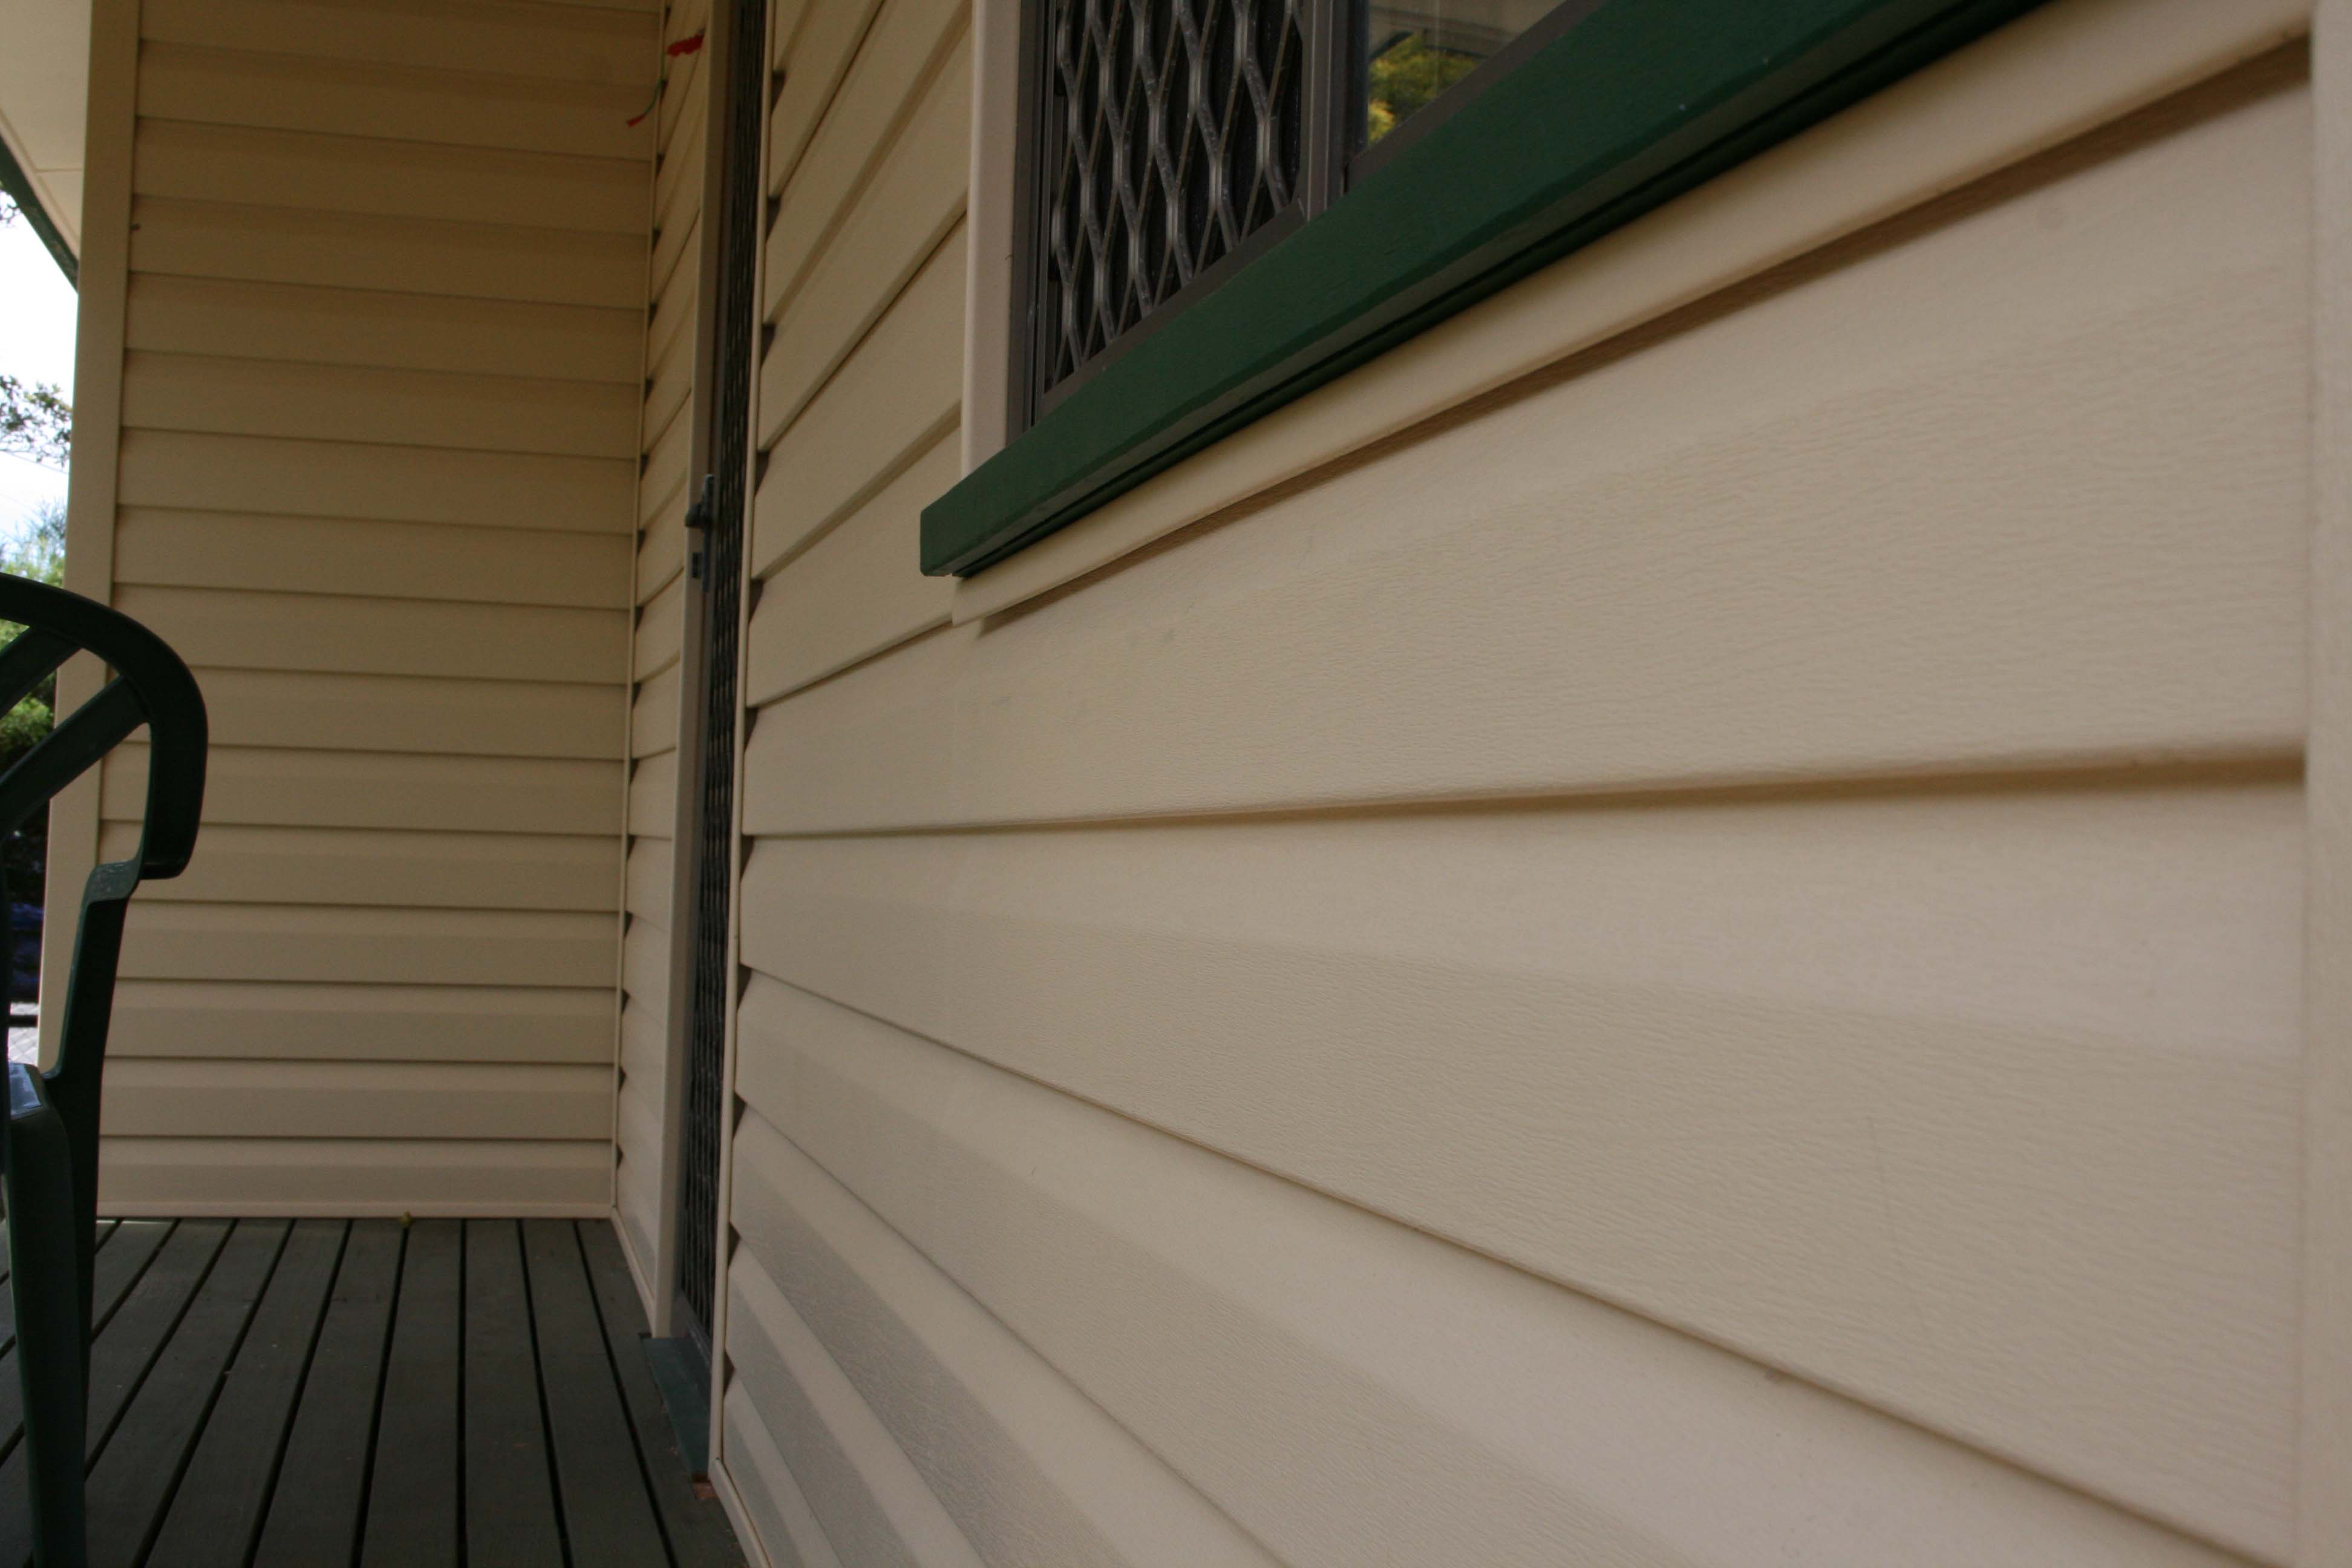 NeoShield Vinyl Cladding by Brisbanes cladding professionals